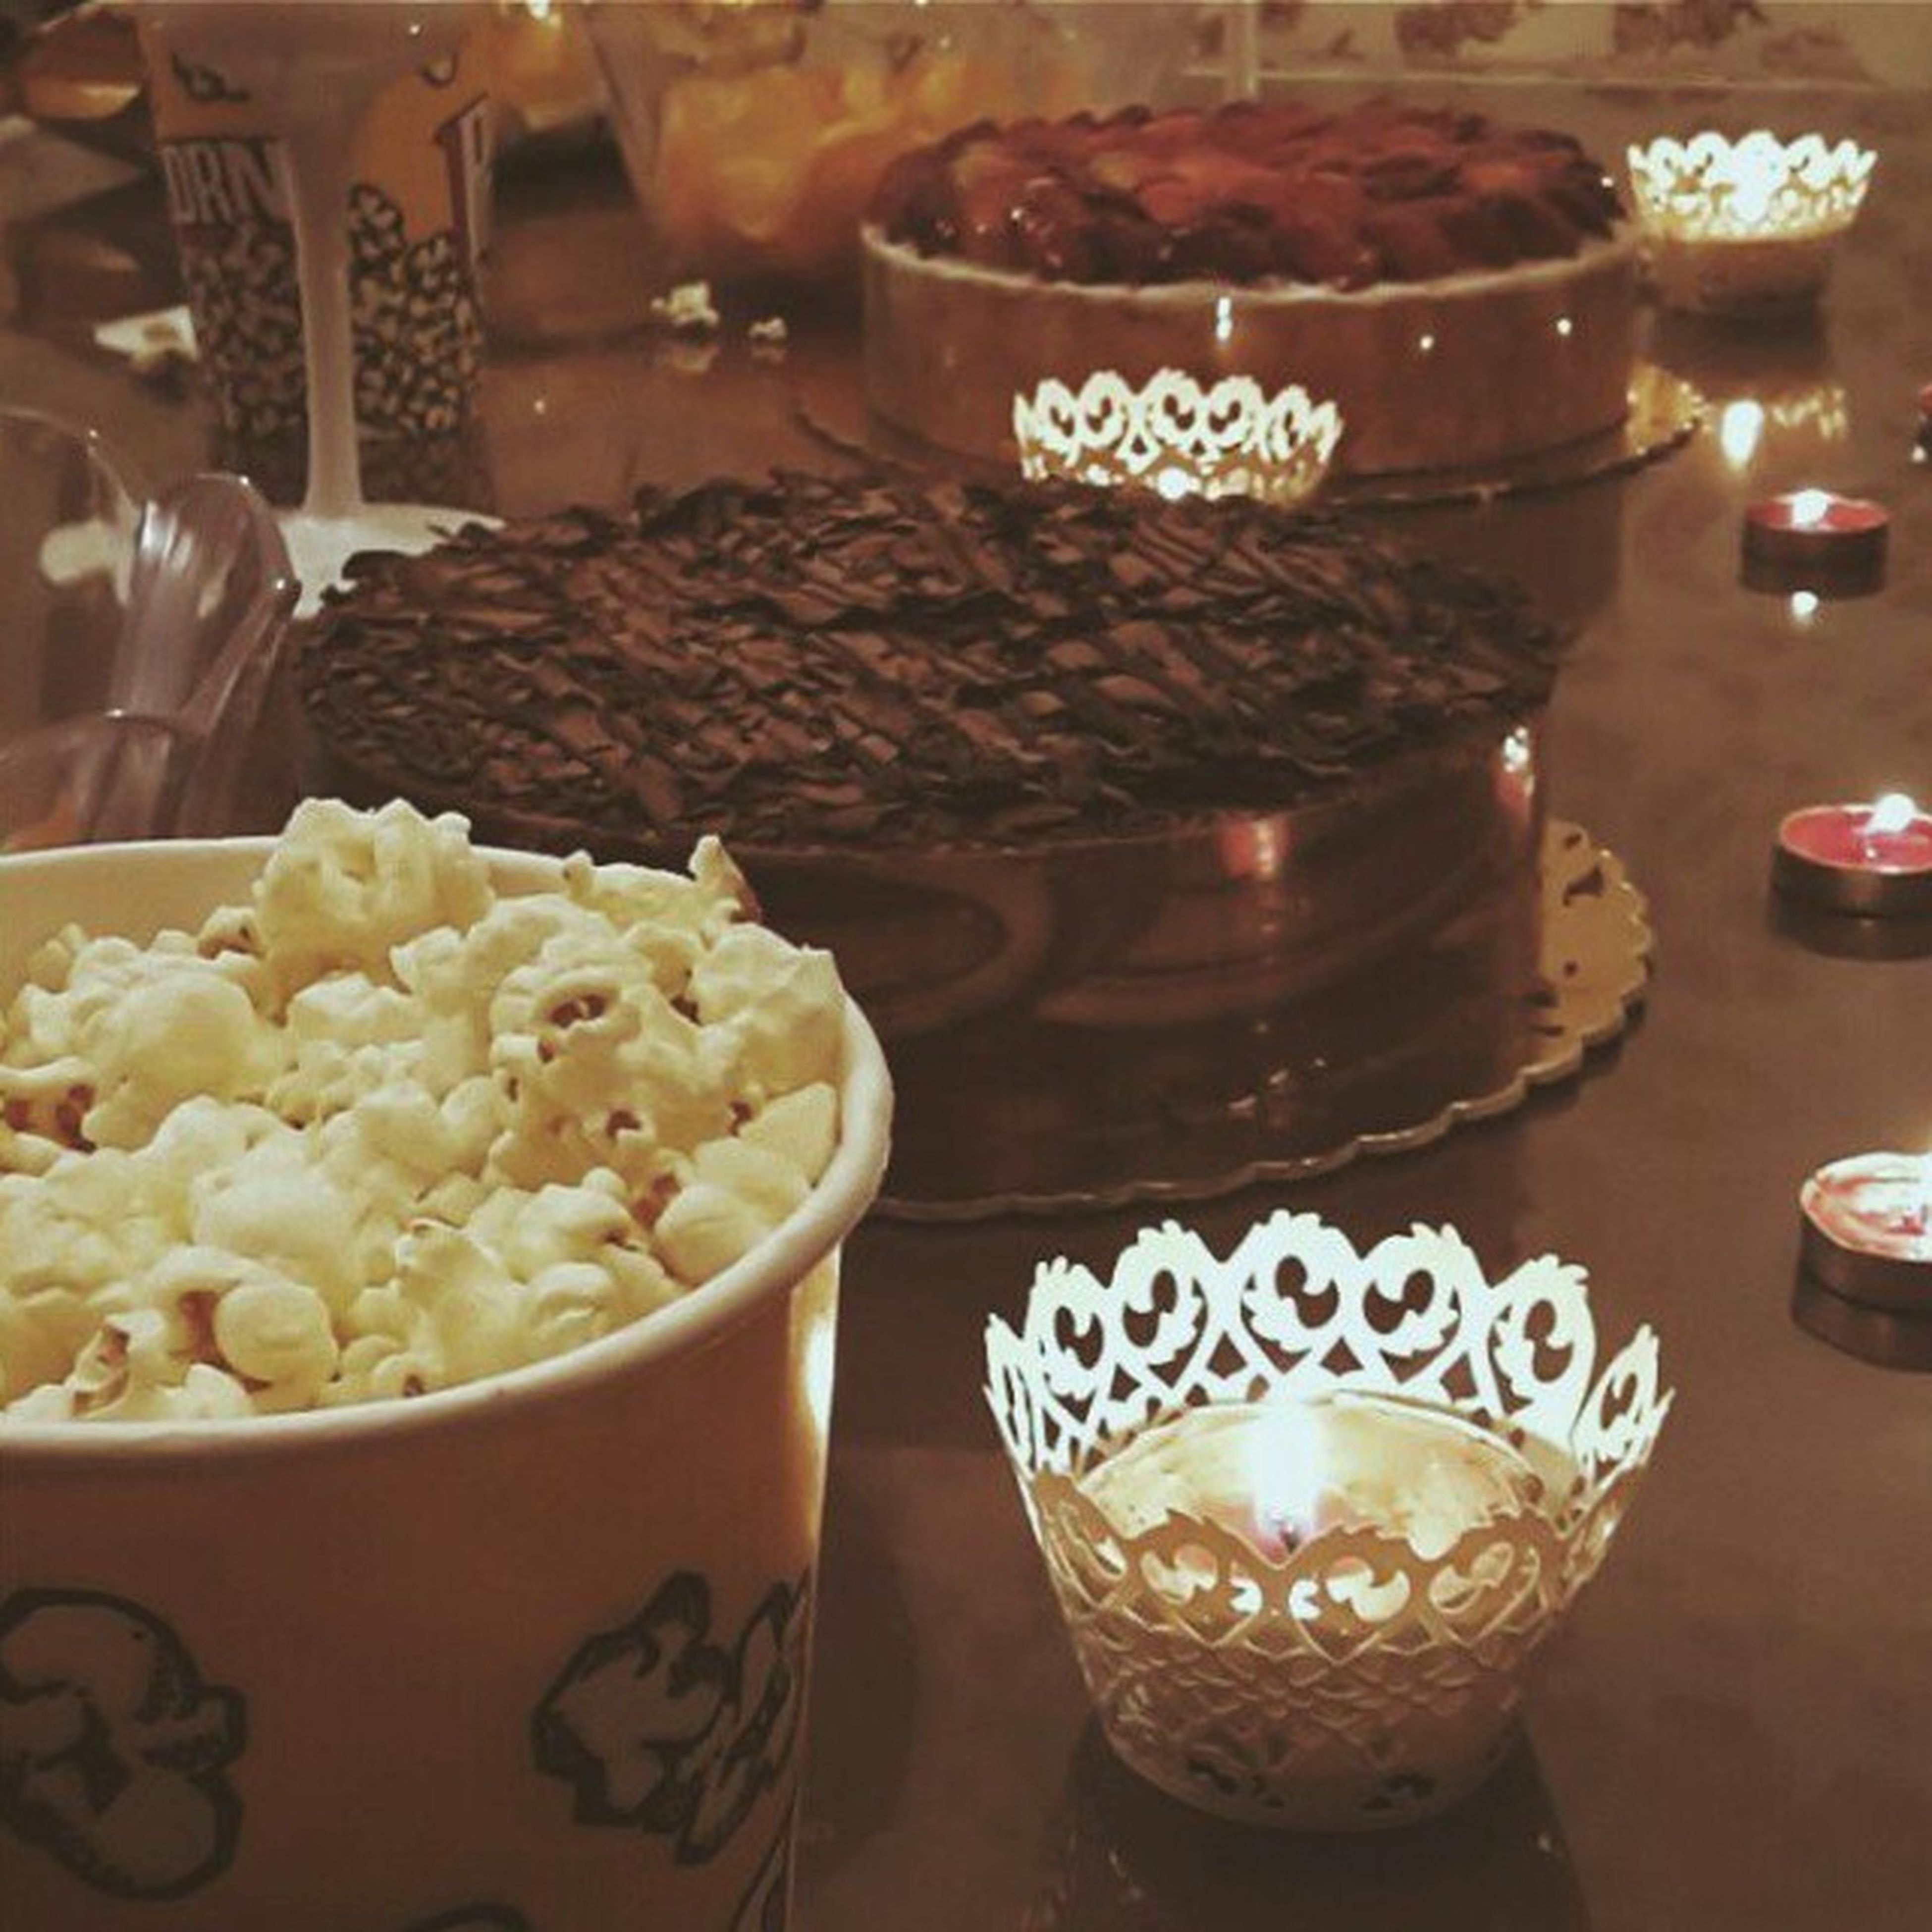 indoors, food and drink, candle, illuminated, table, flame, still life, food, freshness, sweet food, burning, lit, decoration, dessert, indulgence, fire - natural phenomenon, cake, restaurant, large group of objects, heat - temperature